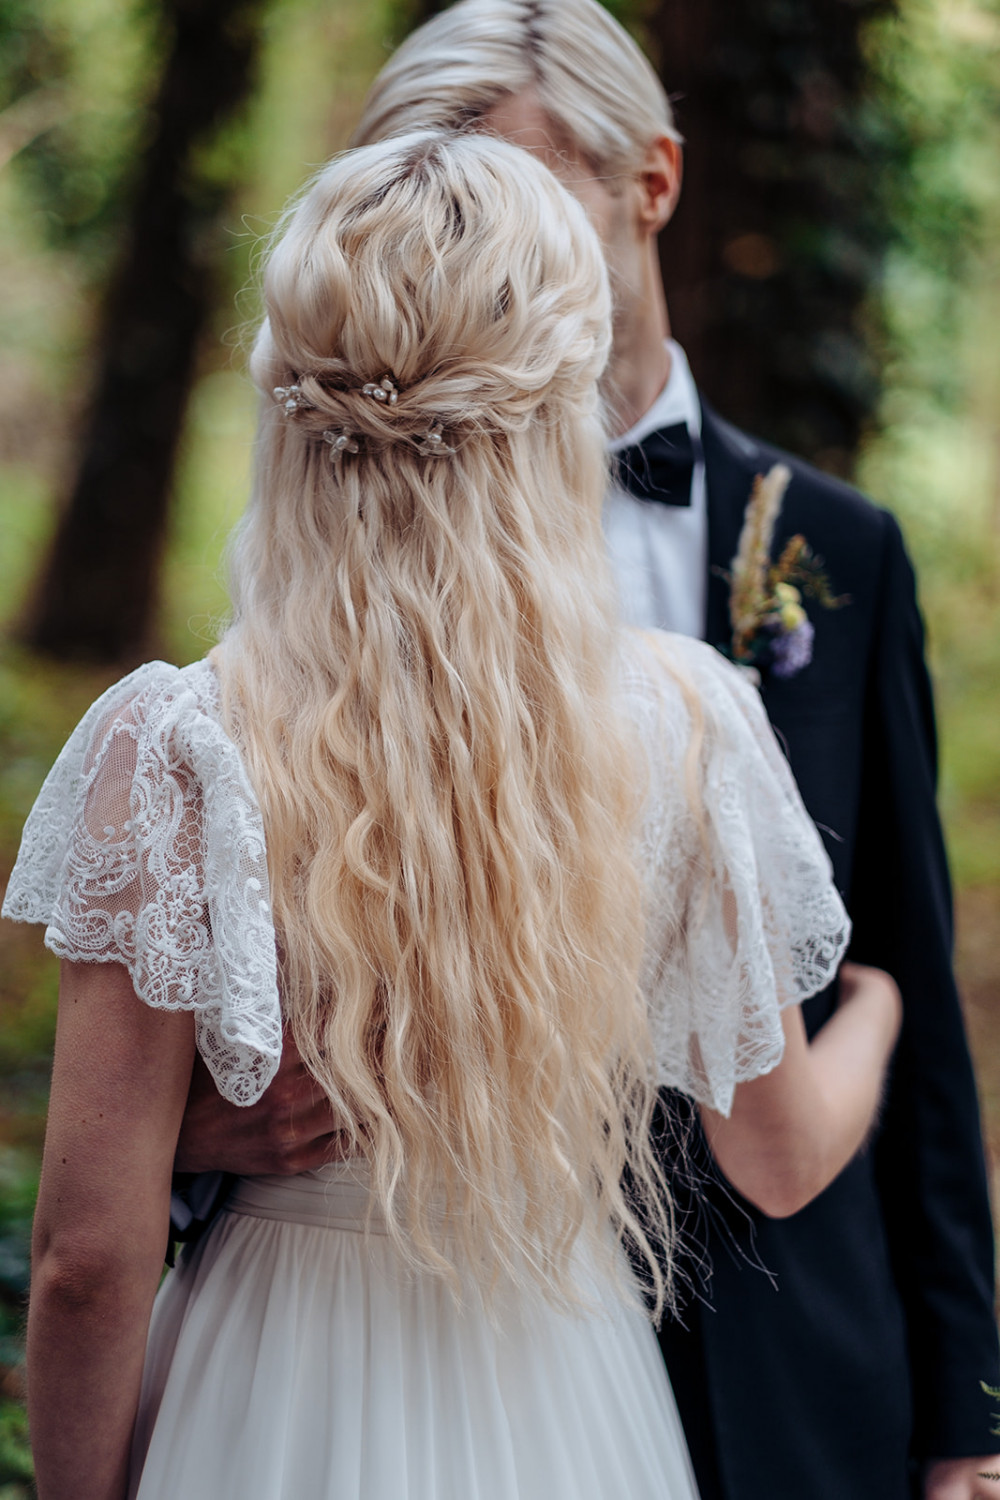 Wedding editorial (hair and hairpins made by me) - Make Me Bridal Artist: let's hair. Photography by: Flavia Grandi. #bohemian #halfuphair #blonde #relaxedhairup #romantic #beachwaves #longhair #relaxed #relaxedupdo #romantichair #mermaidhair #longhairstyle #mermaidwaves